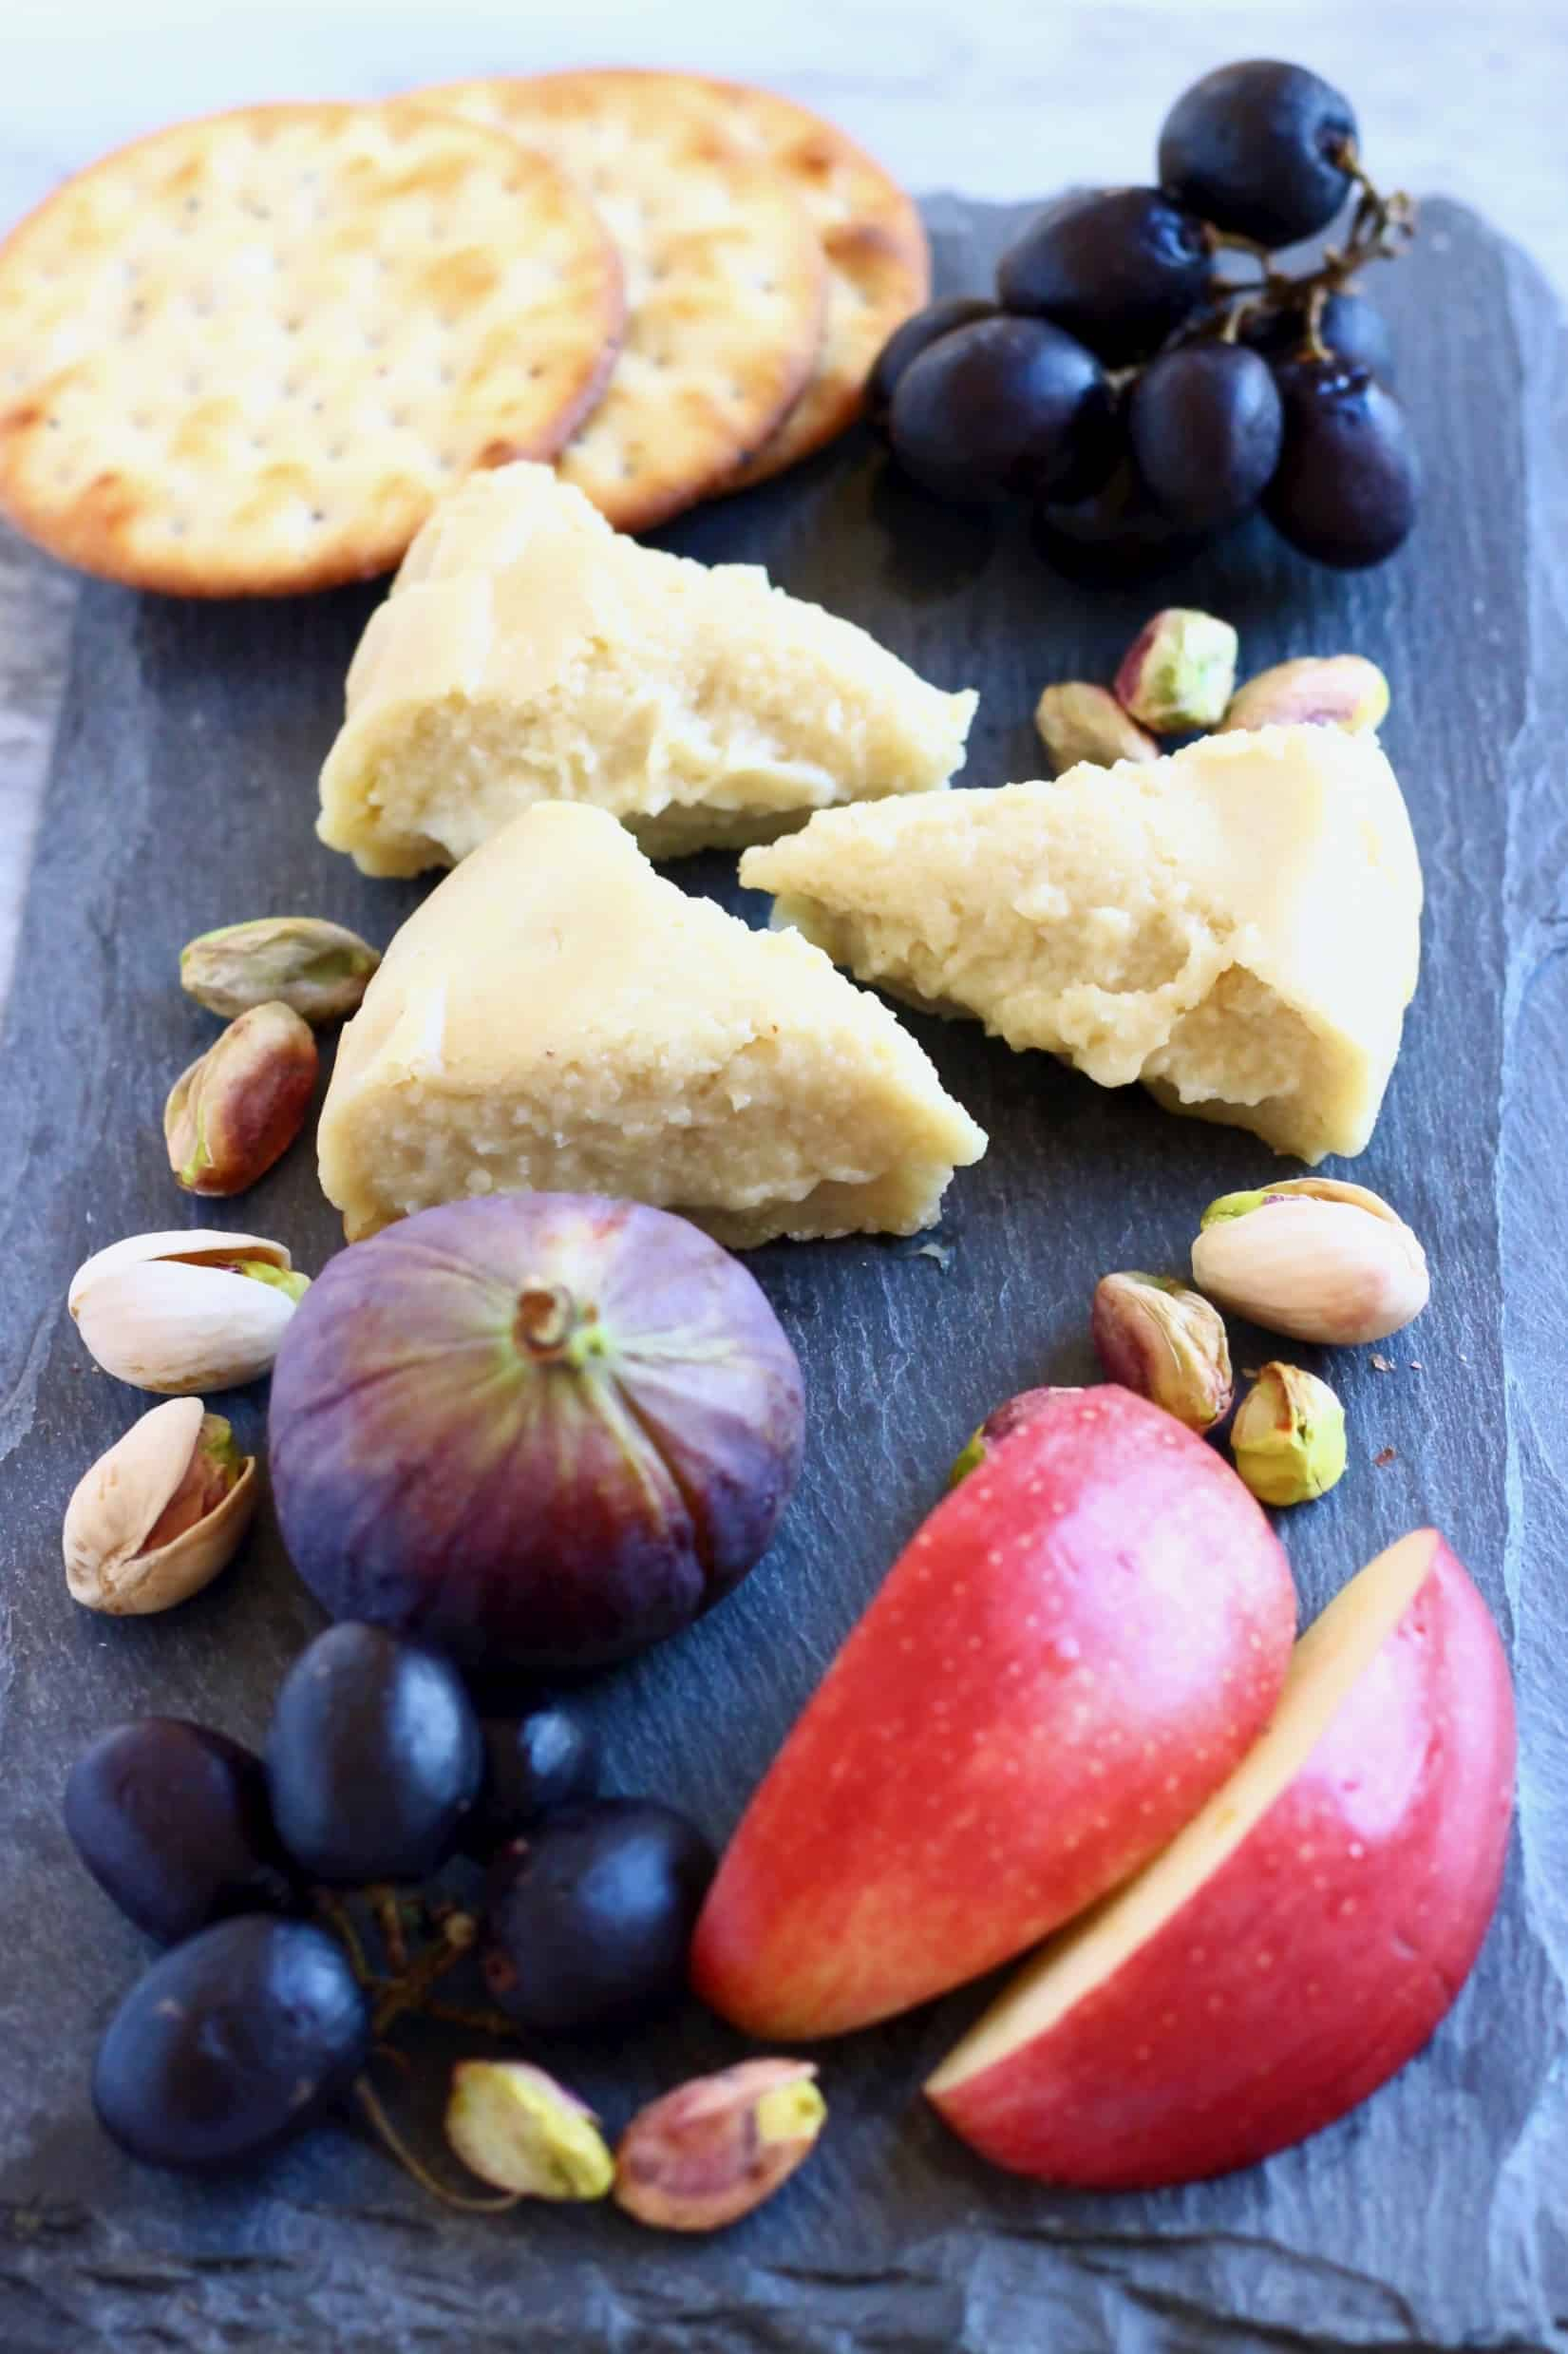 Three triangular slices of brie on a black slab with sliced apples, grapes, figs, pistachios and crackers